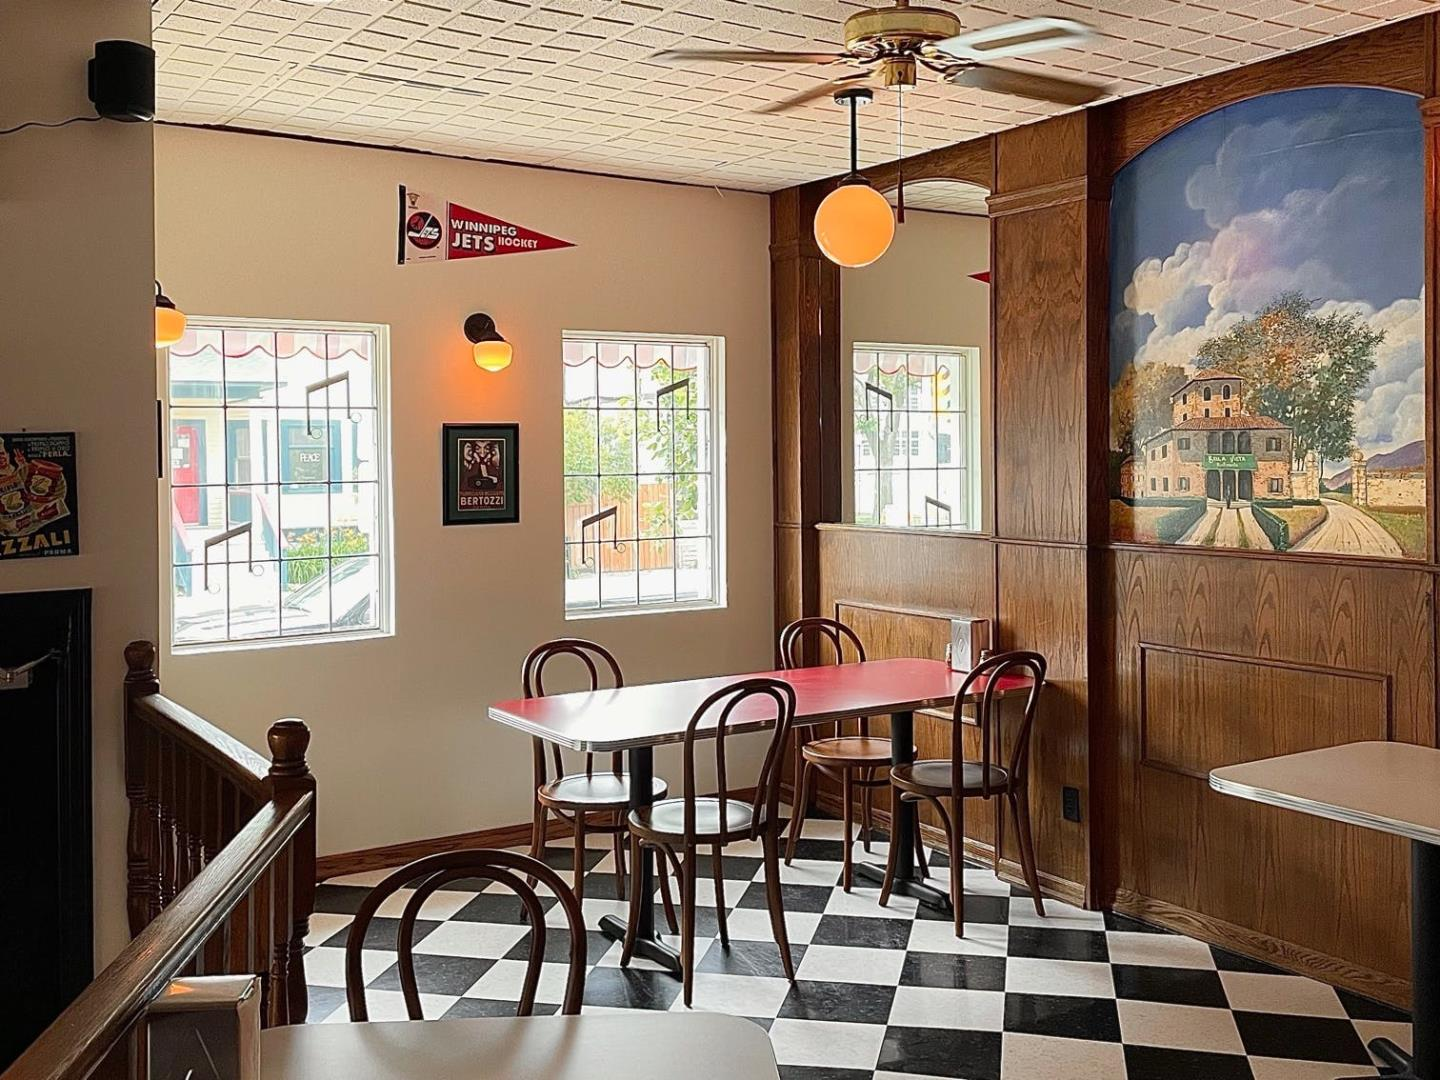 Shorty's Pizza Restaurant - Picture